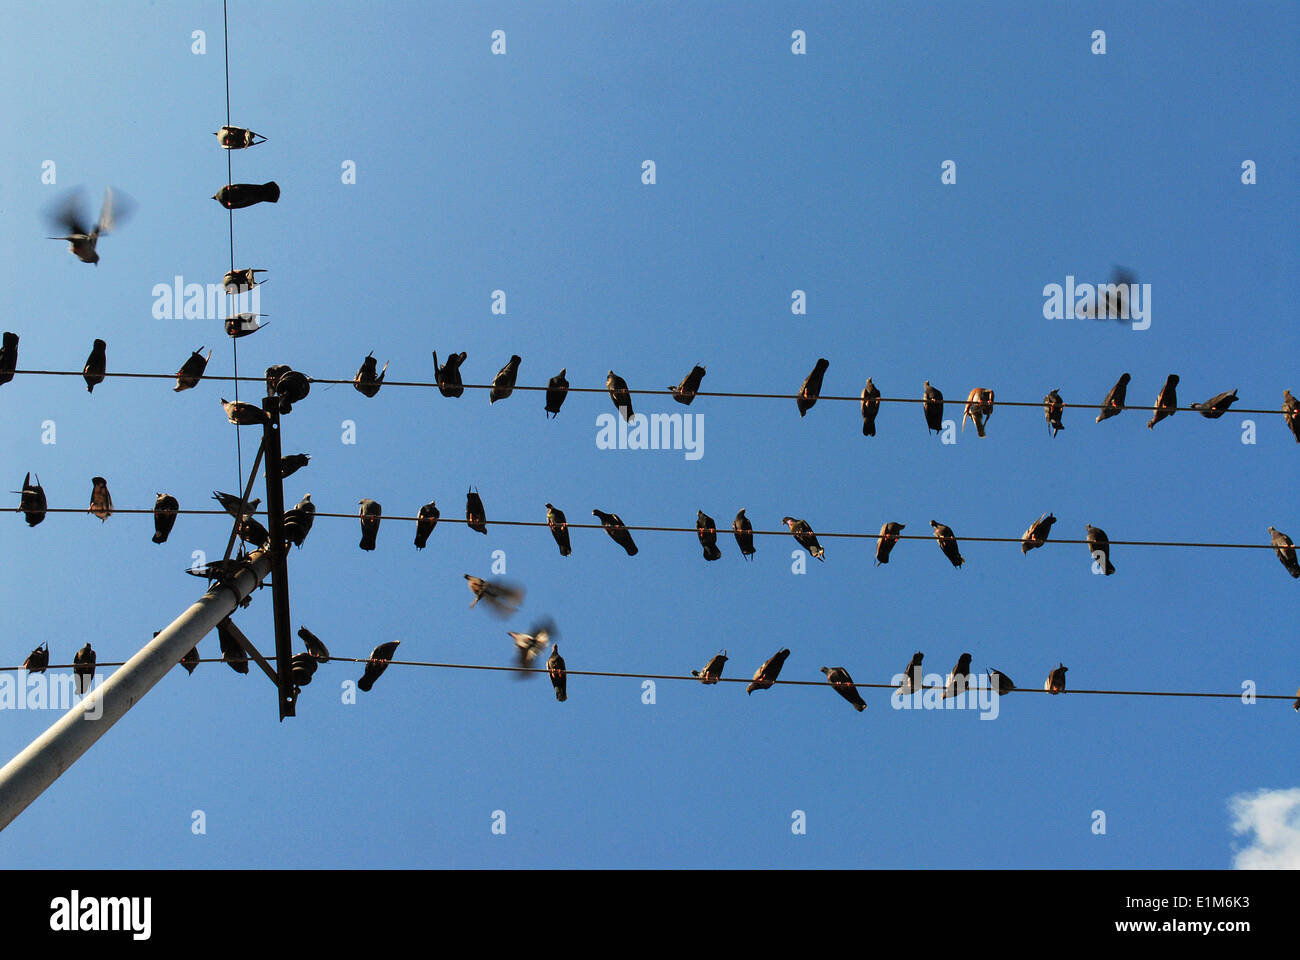 Swallows on electric wires Stock Photo: 69900407 - Alamy